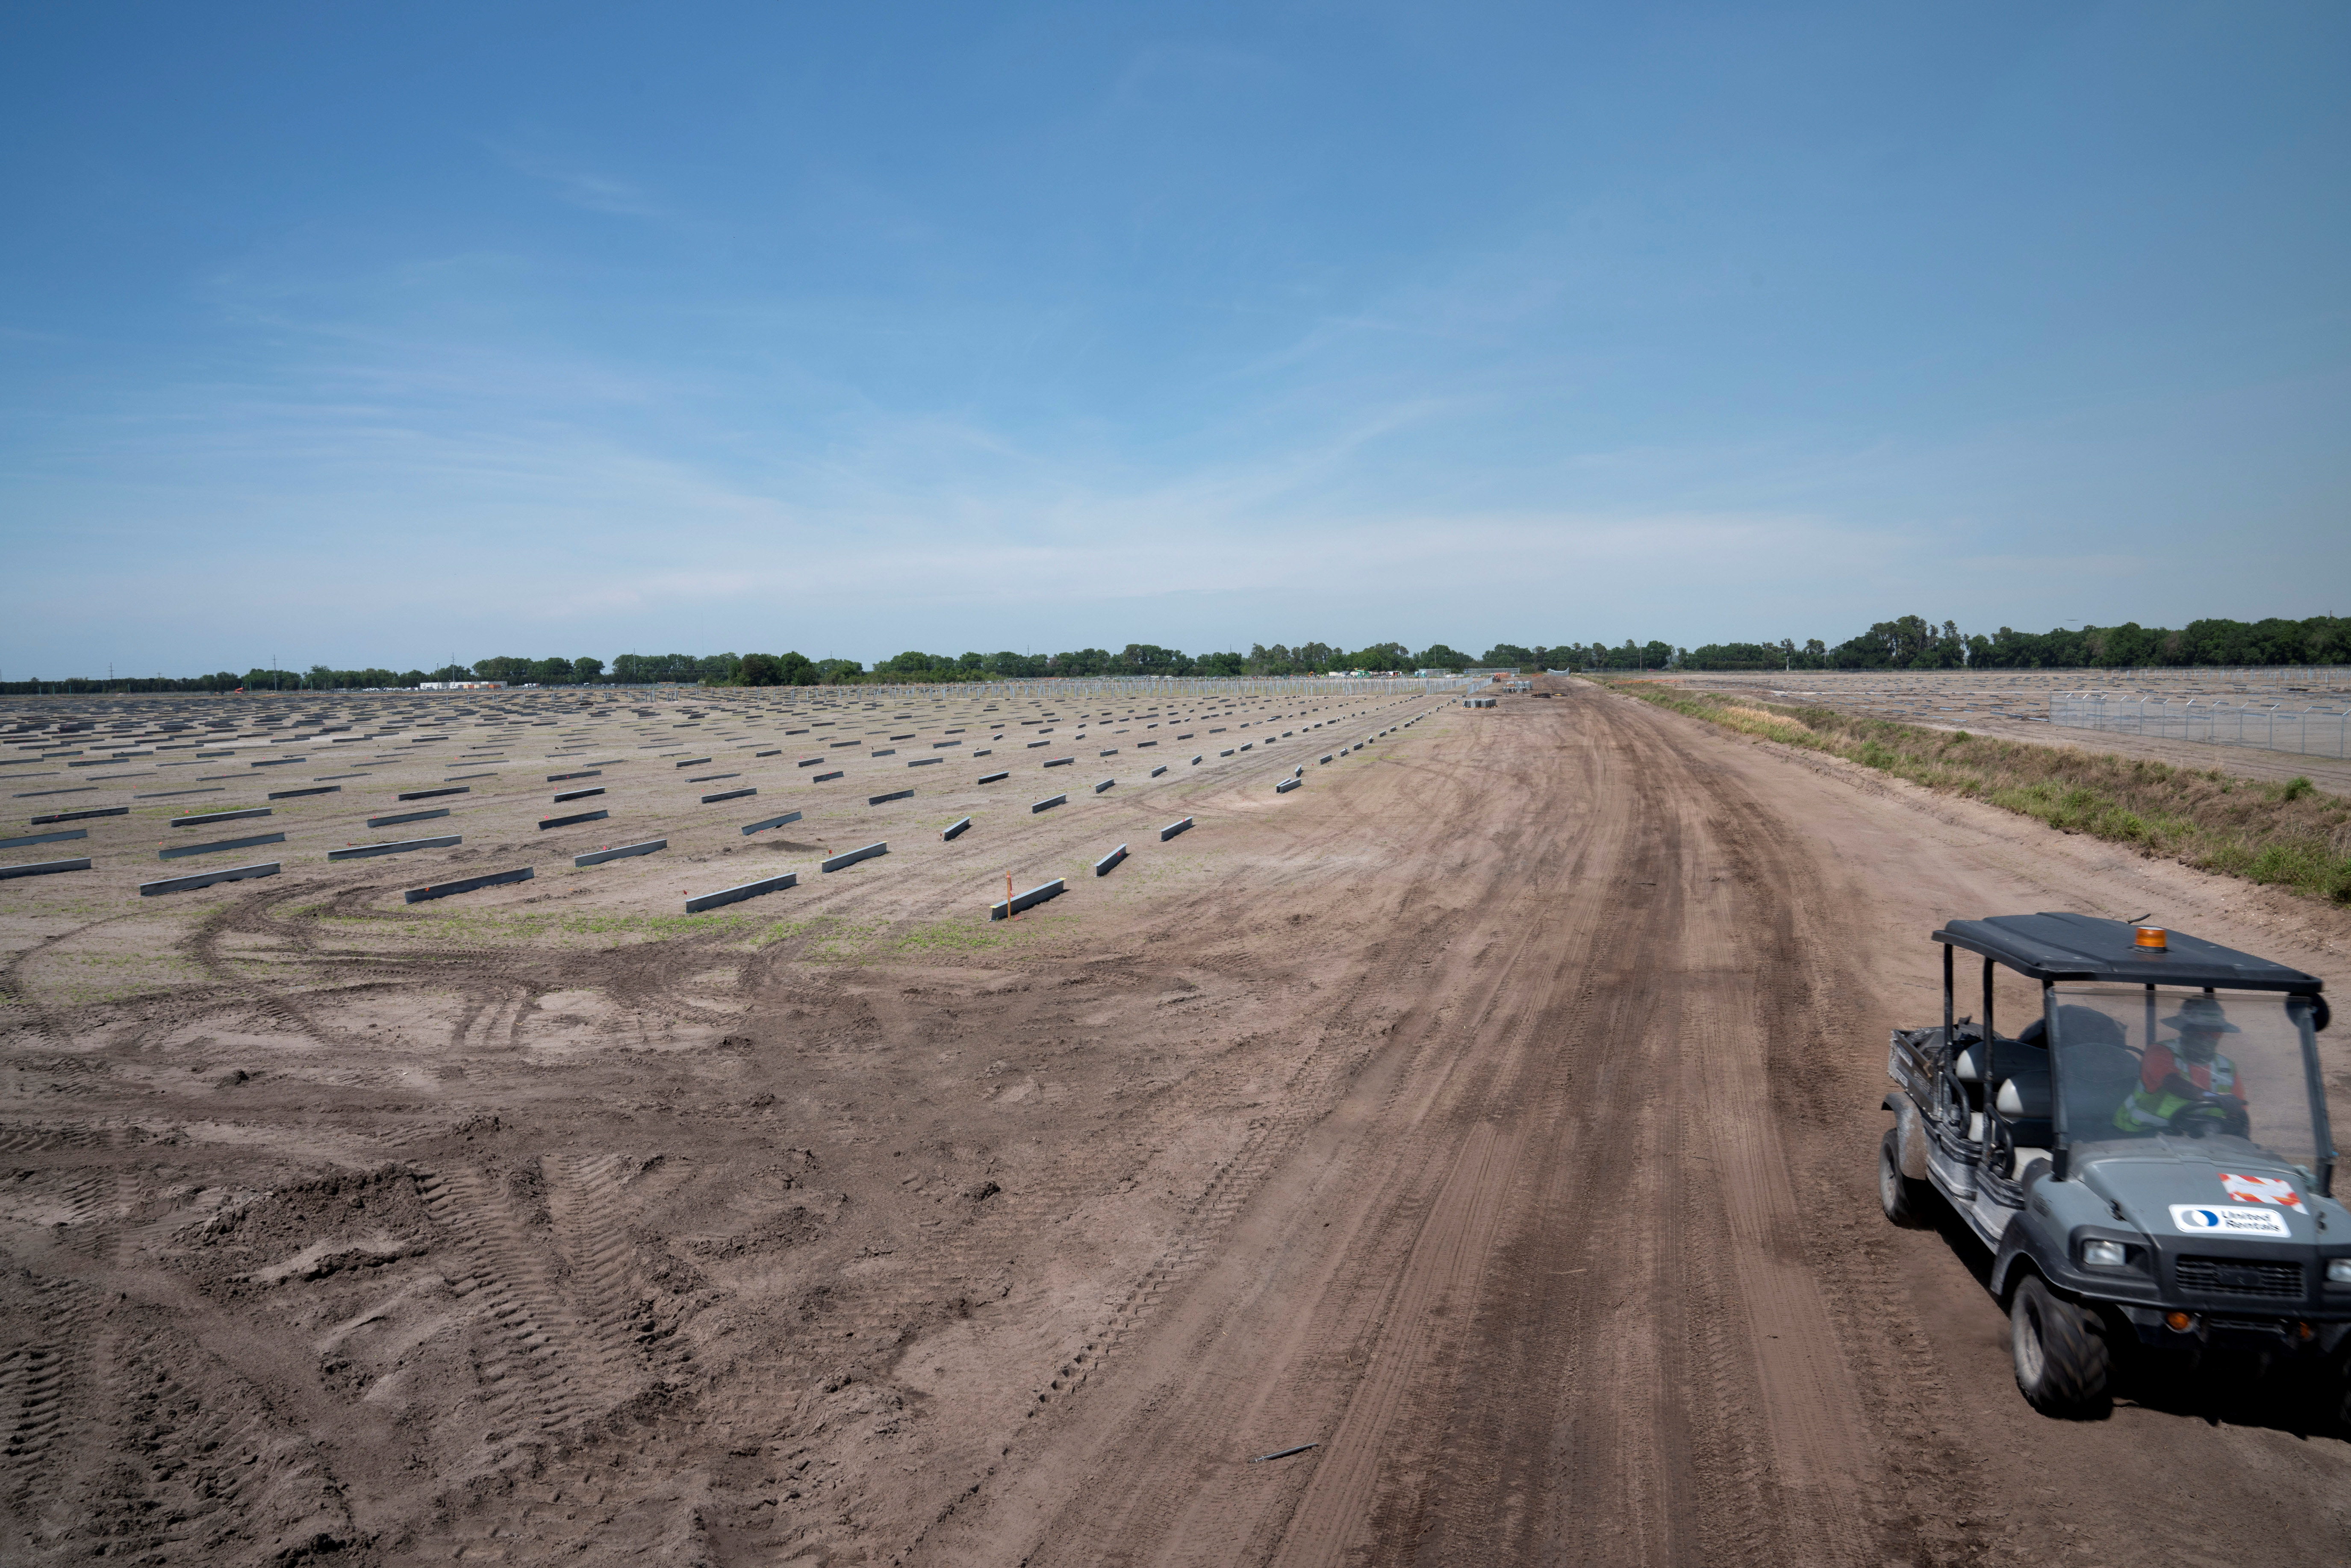 A construction worker drives past a field of metal piles at the Duette solar site being developed on previously agricultural land in Bowling Green, Florida, U.S., March 24, 2021. REUTERS/Dane Rhys